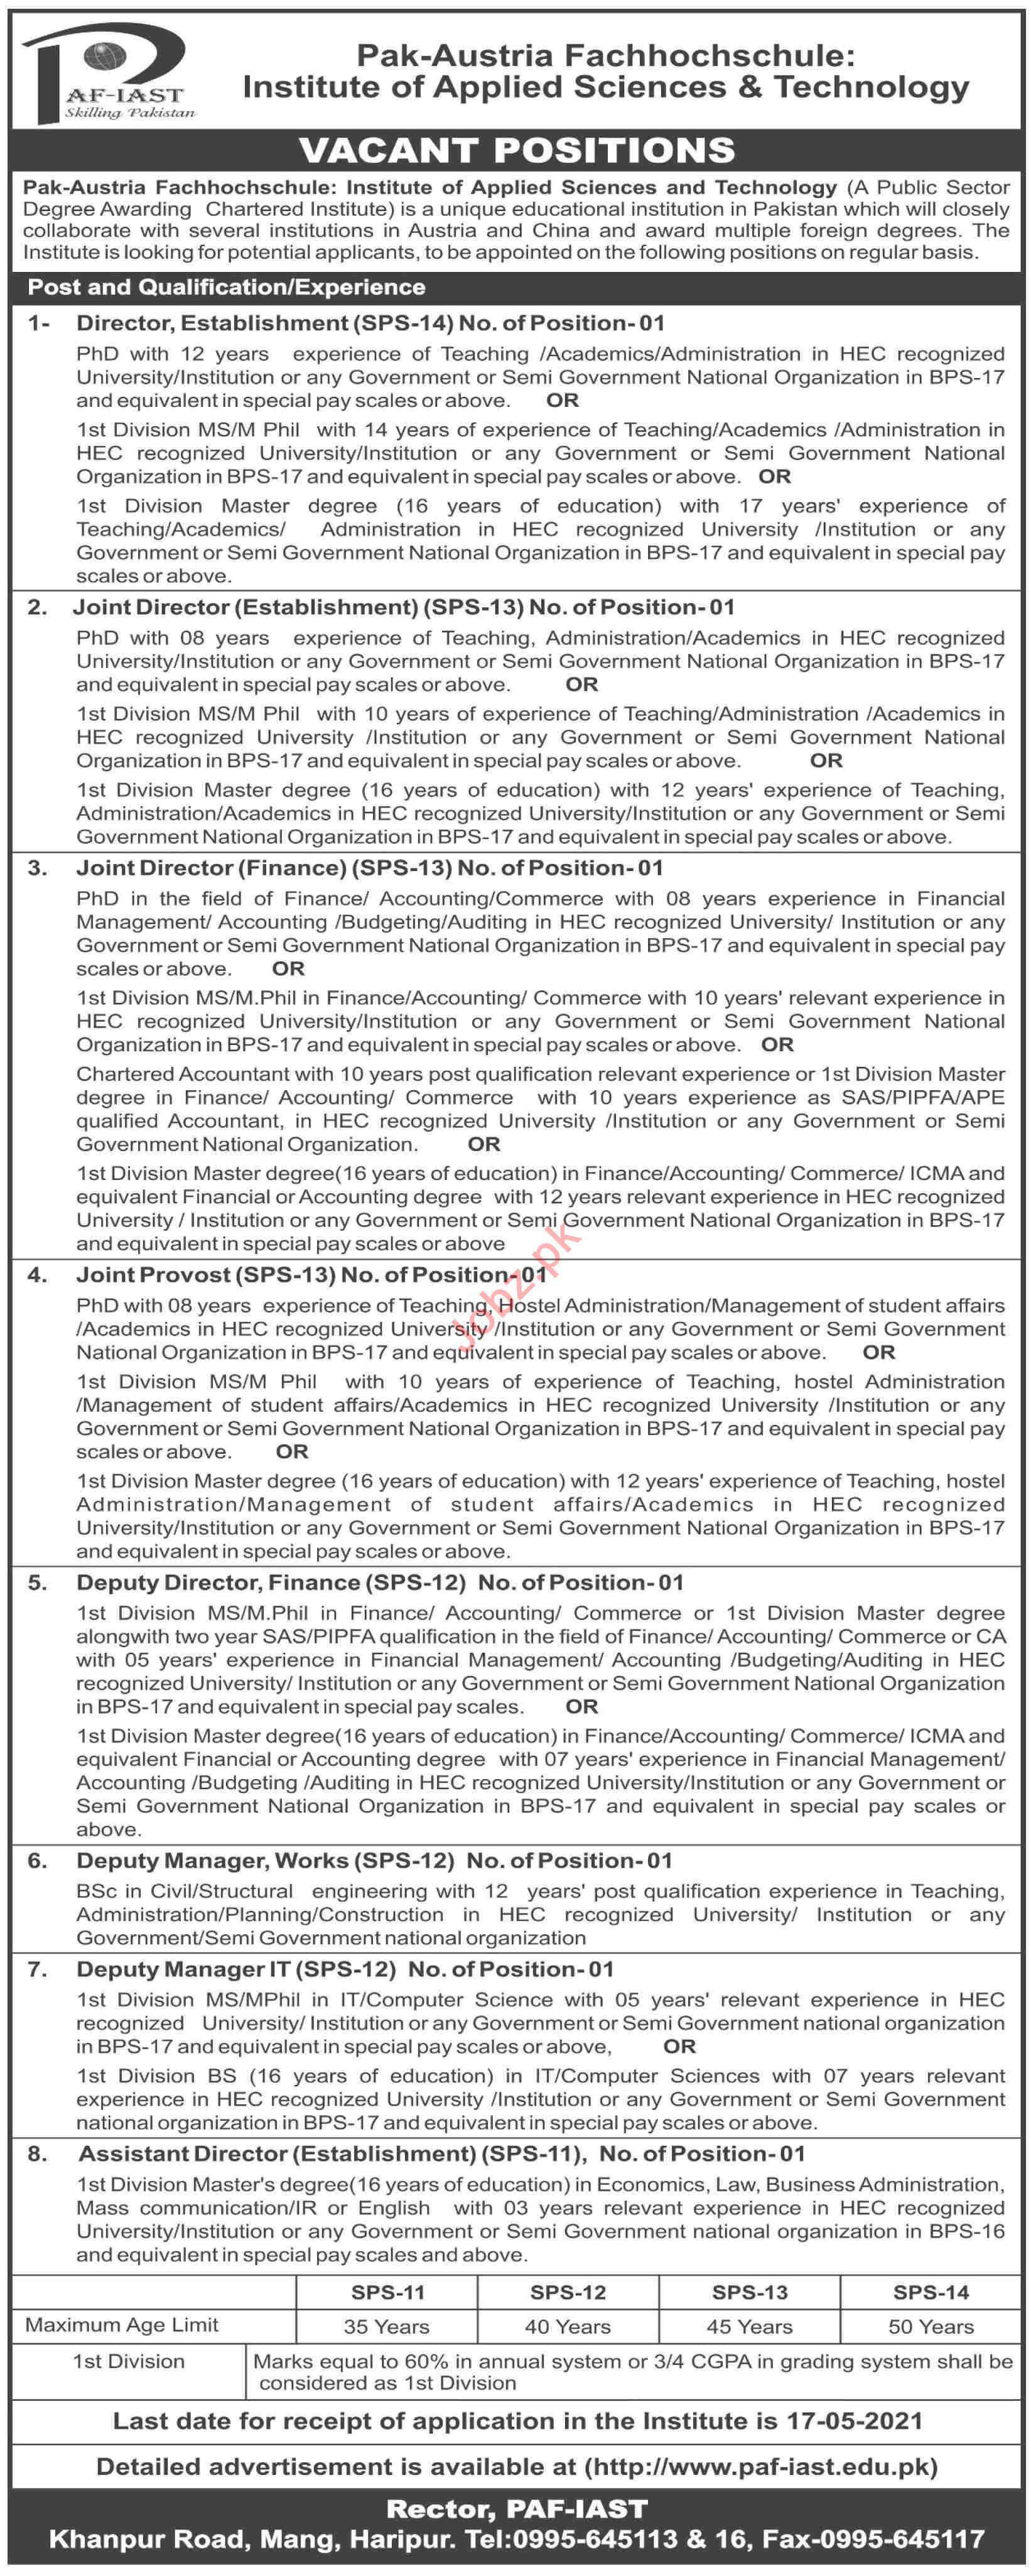 PAF IAST Institute Haripur Jobs 2021 for Director